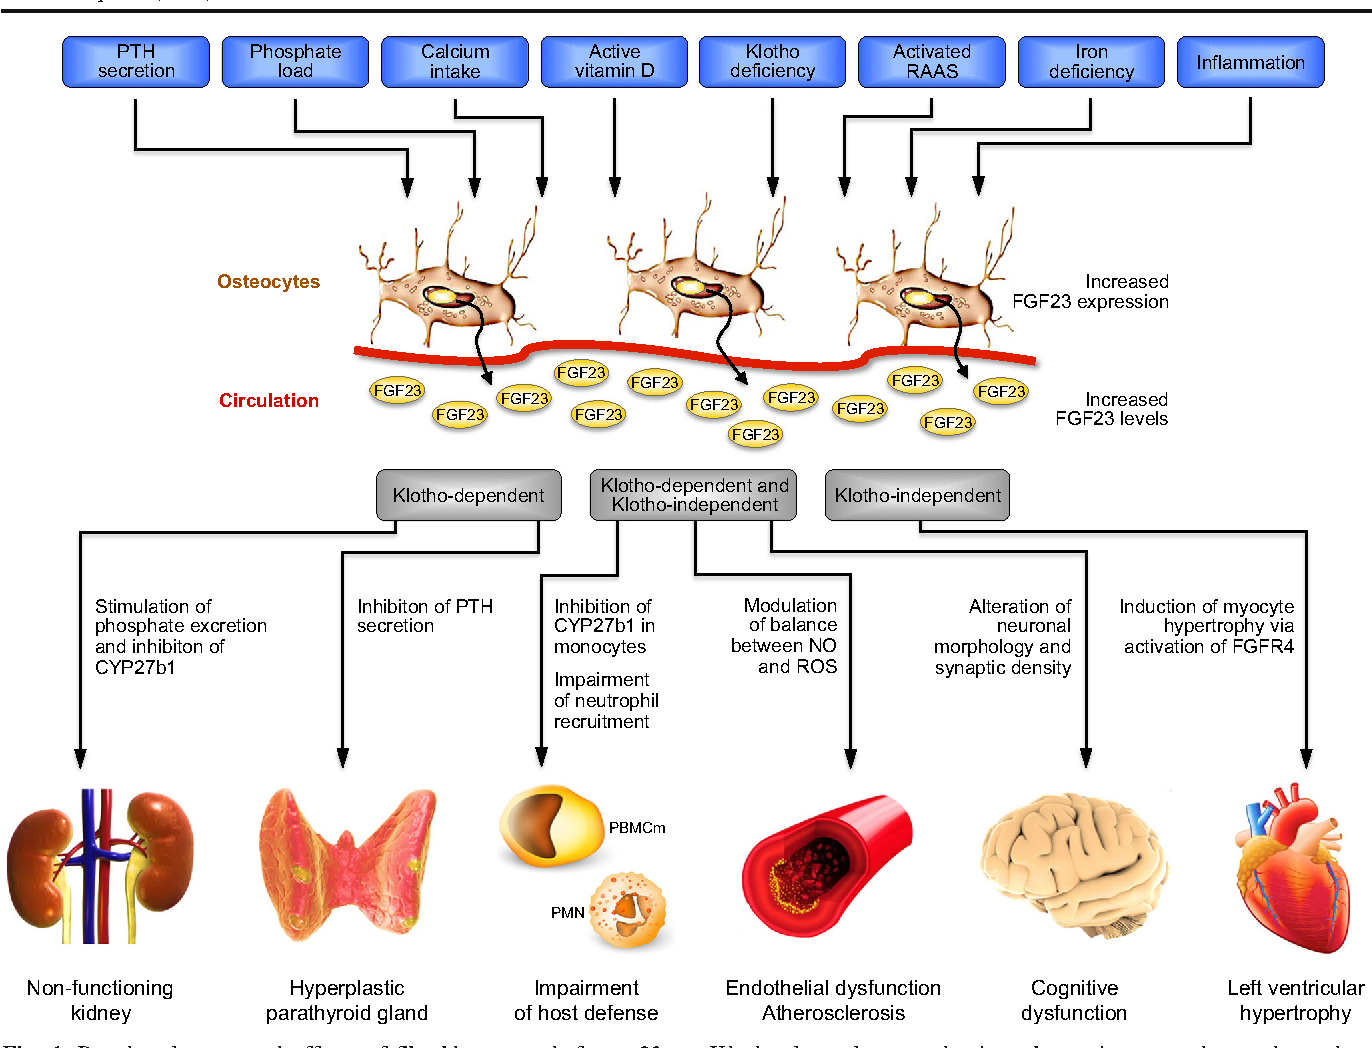 extrarenal effects of fgf23 semantic scholar